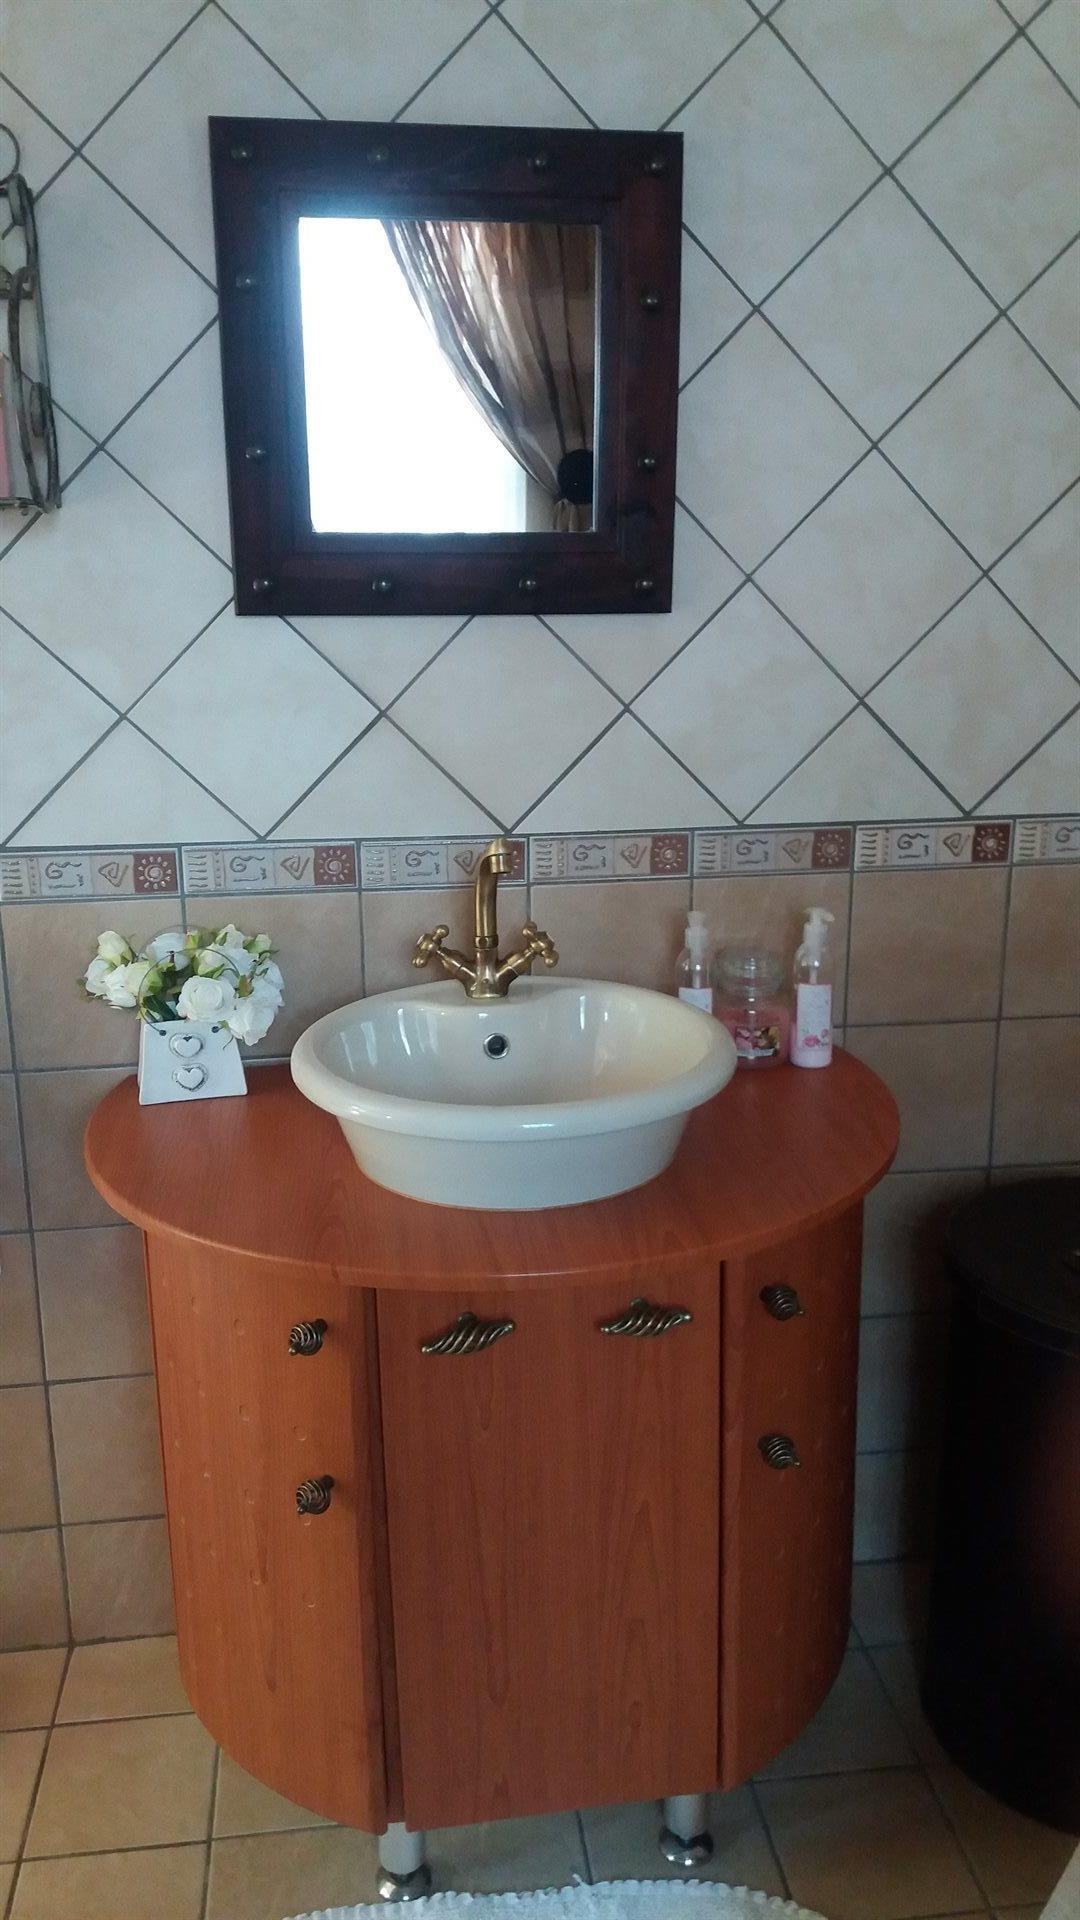 Theresapark property for sale. Ref No: 13566719. Picture no 13